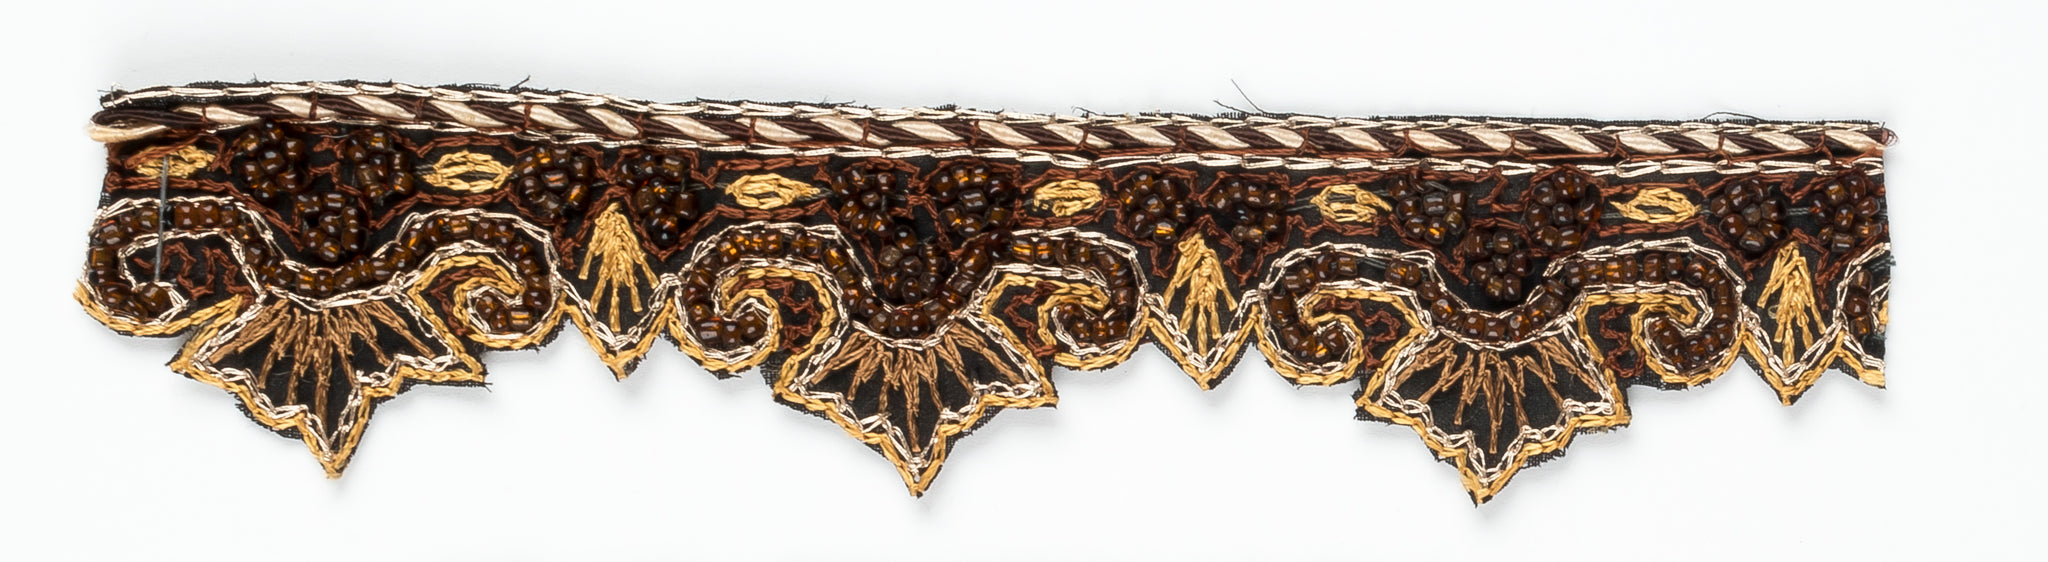 Brown Chic Mehndi Style Handcrafted Indian